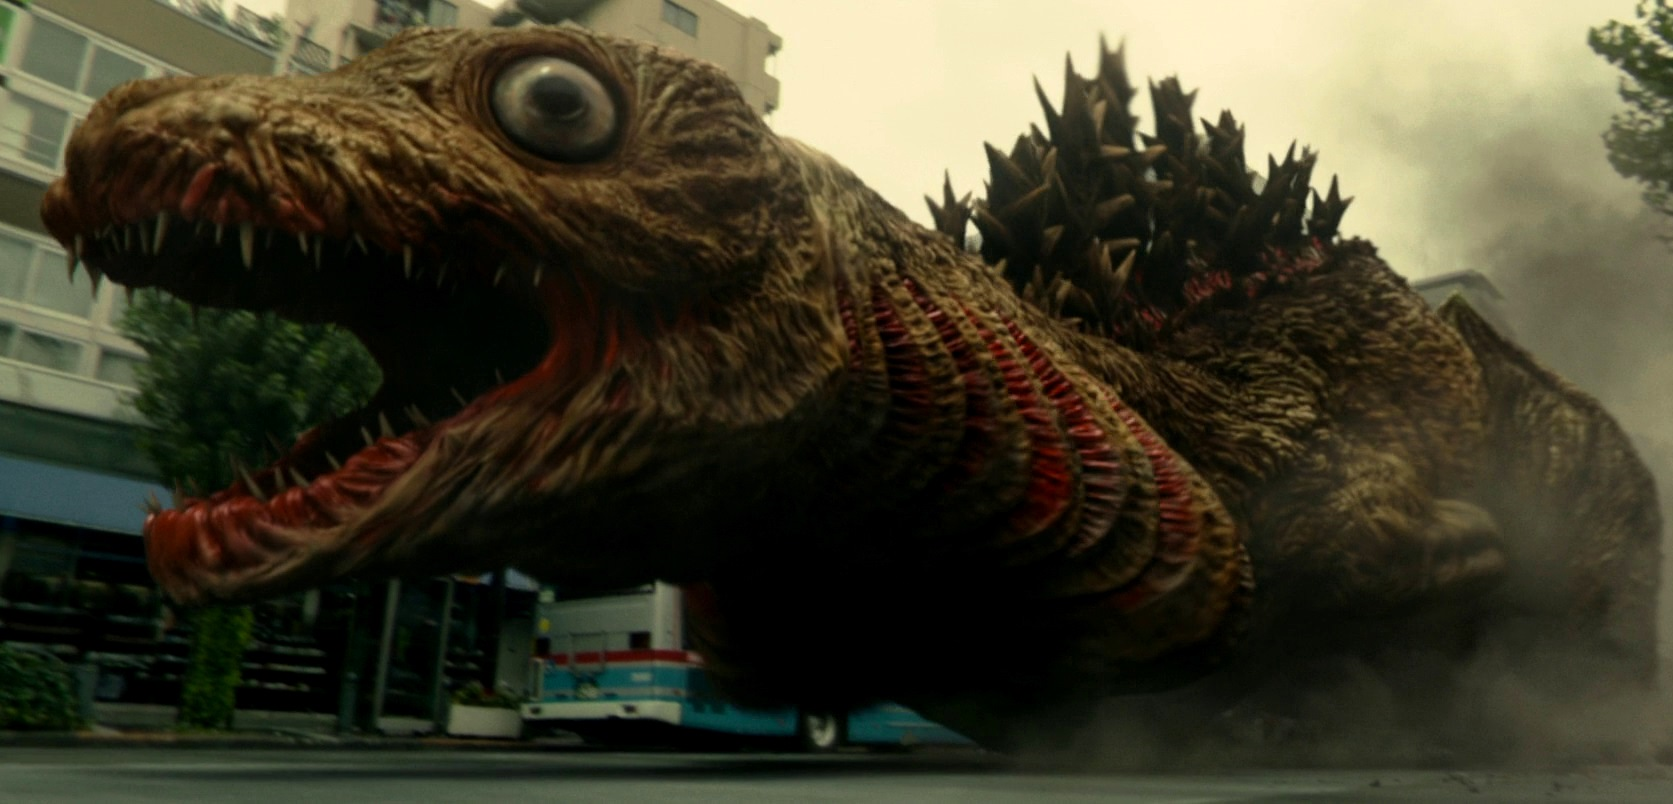 The initial larval form of Godzilla emerges into the streets in Shin Godzilla (2016)